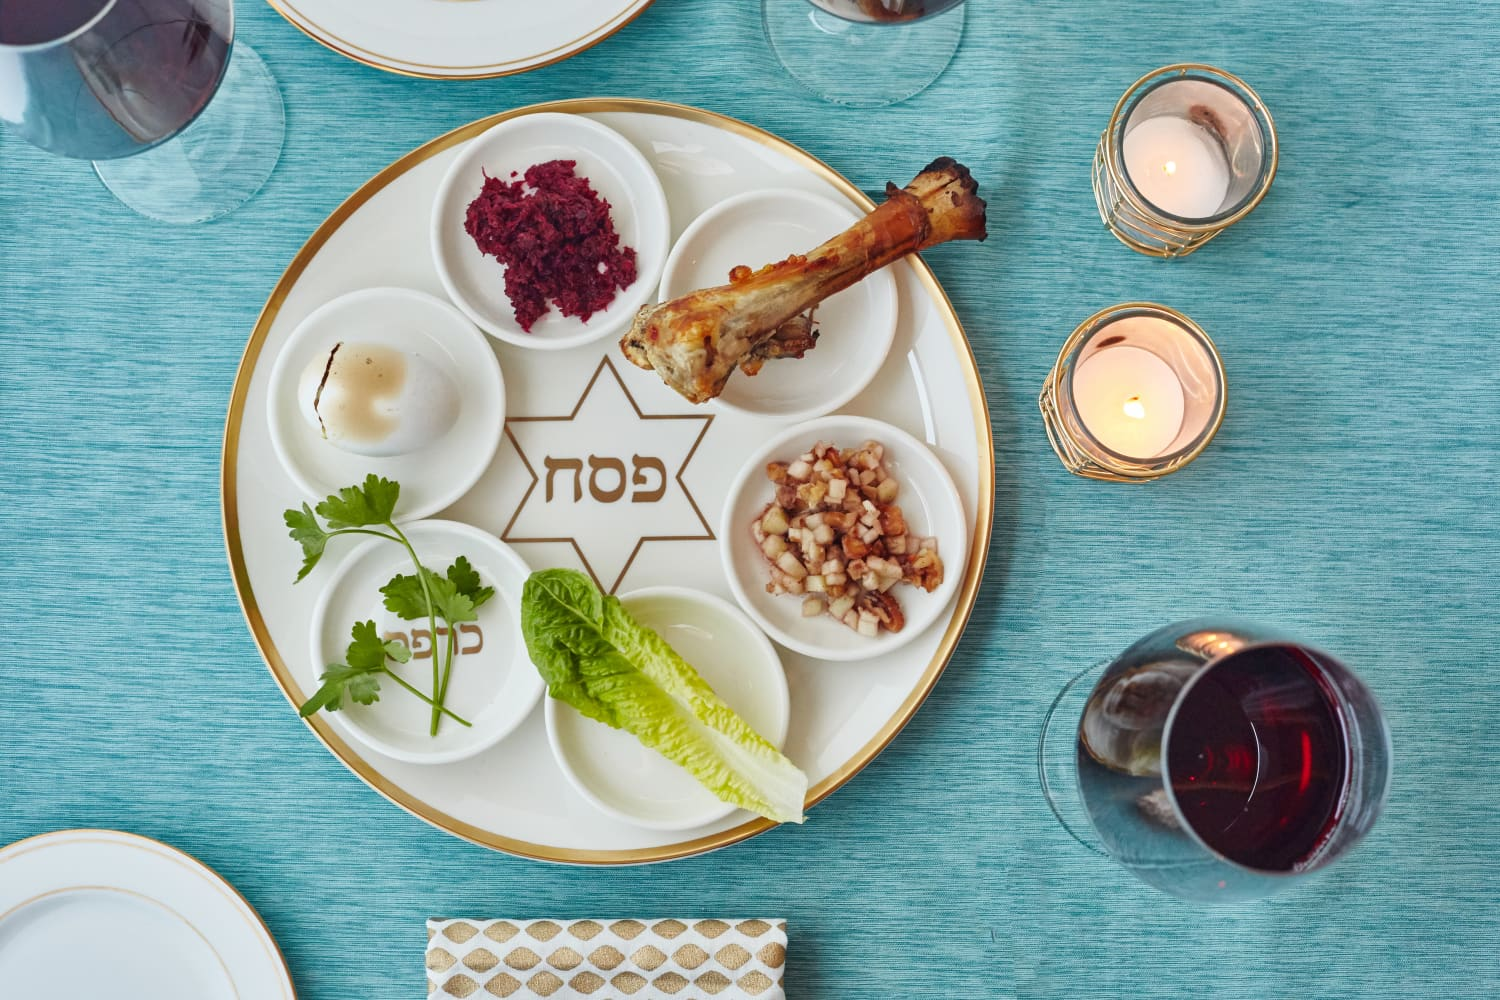 Learn About The 6 Elements Of A Traditional Seder Plate